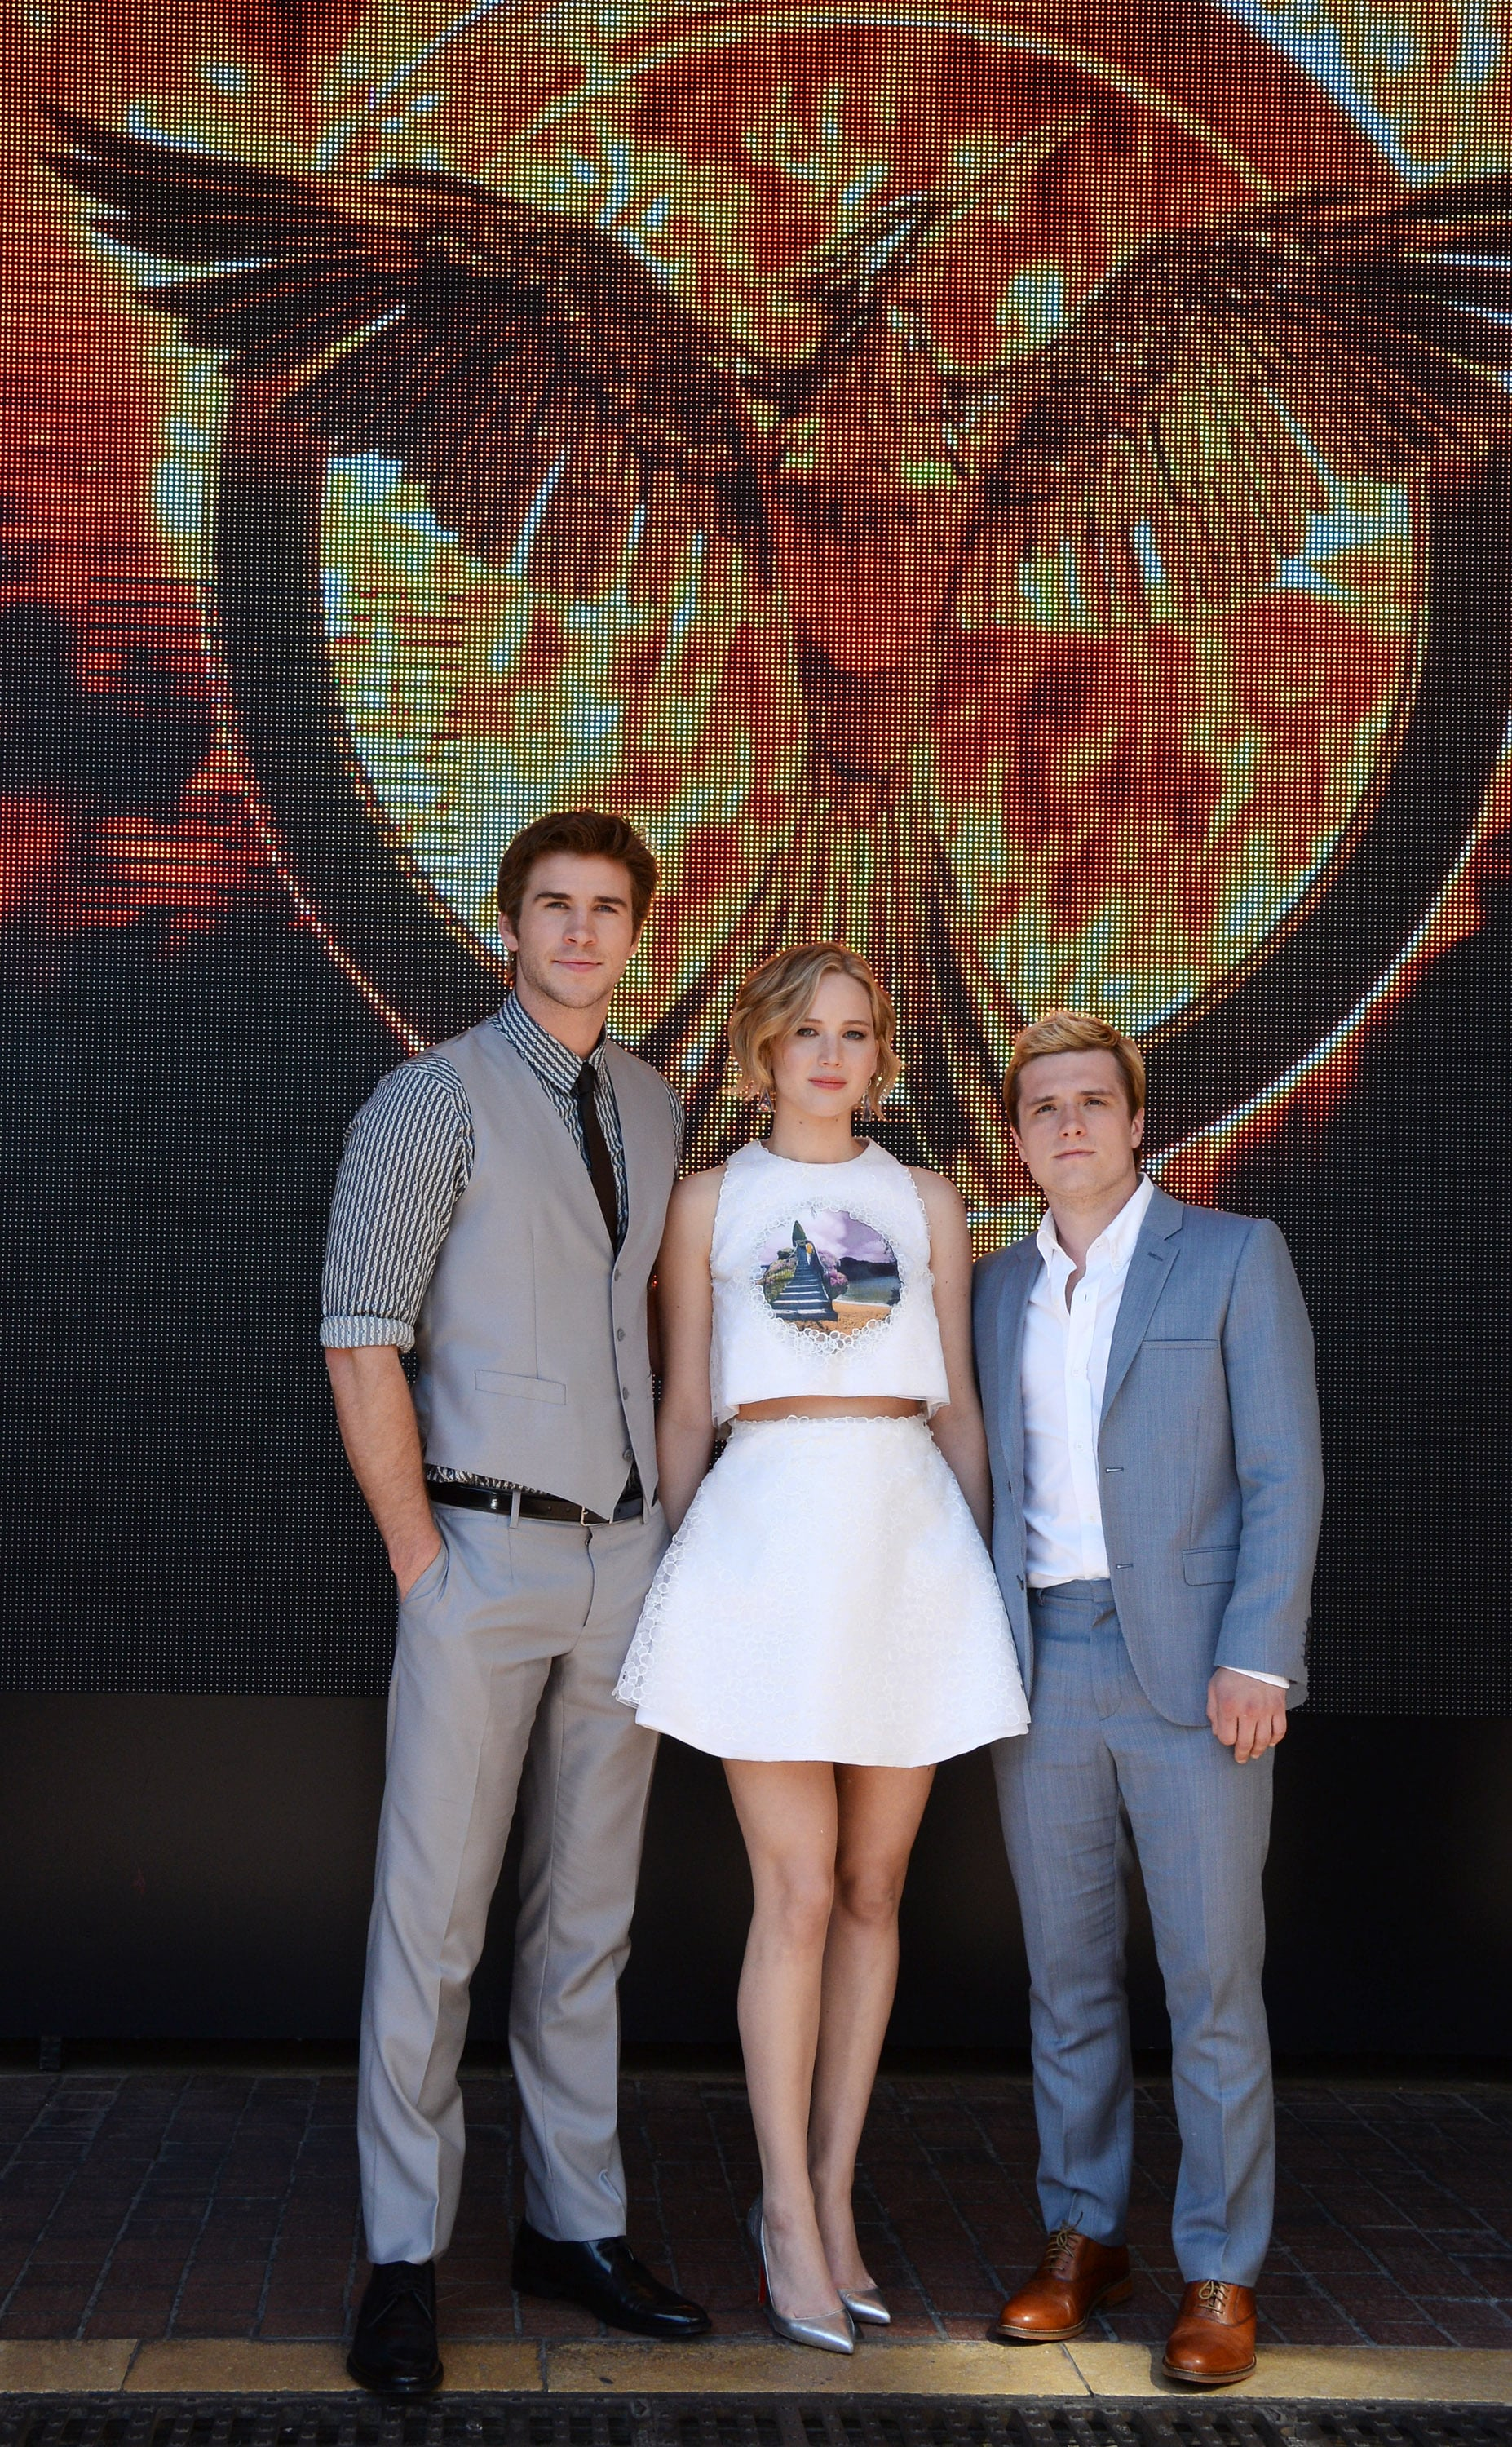 Liam Hemsworth, Jennifer Lawrence, and Josh Hutcherson stood in front of a giant Mockingjay backdrop.